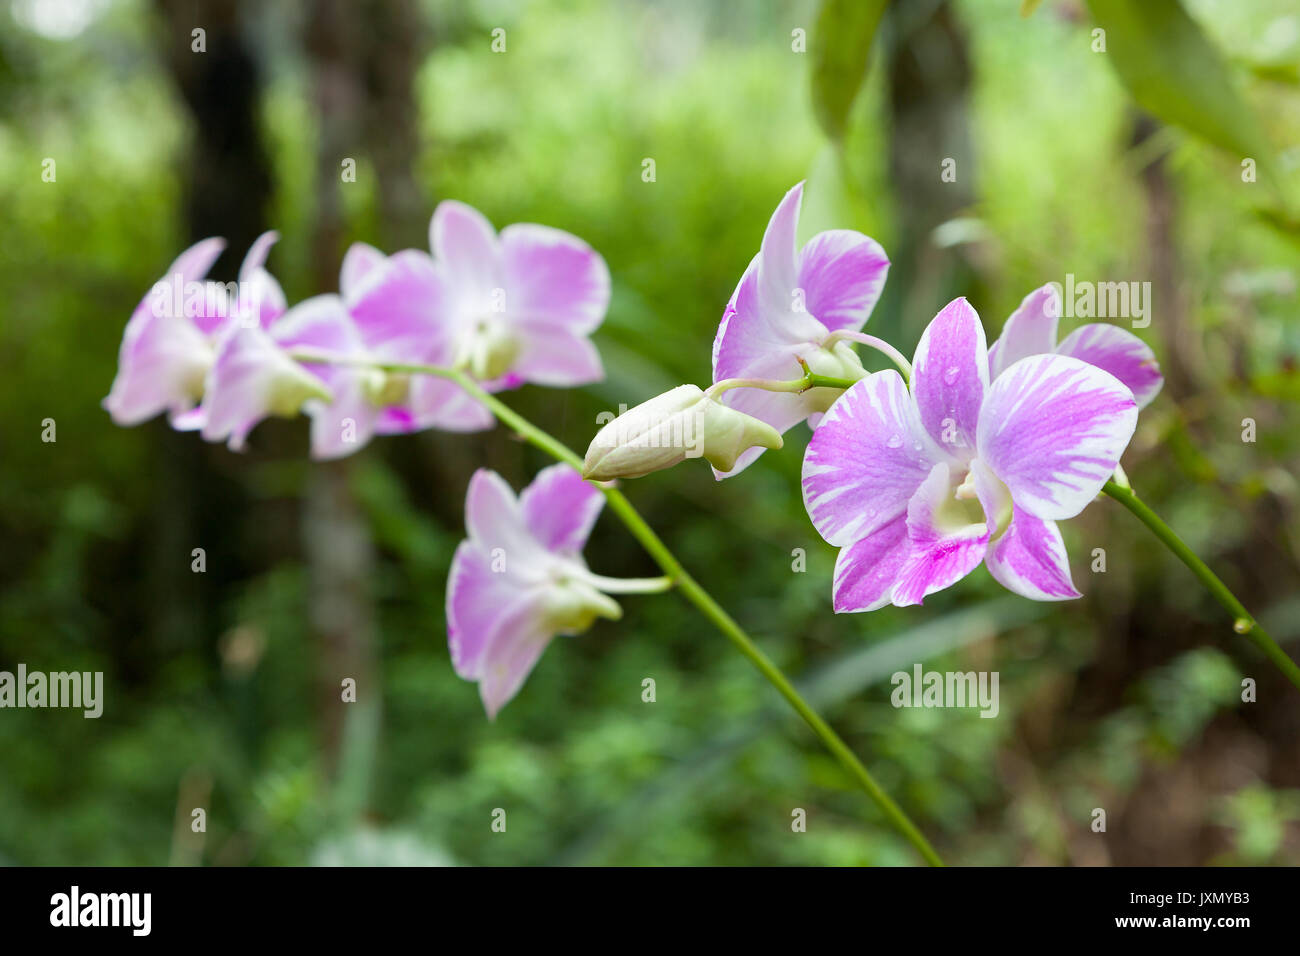 Close up of pink flowers in the tropical forest of Kinabalu Park, Borneo - Stock Image